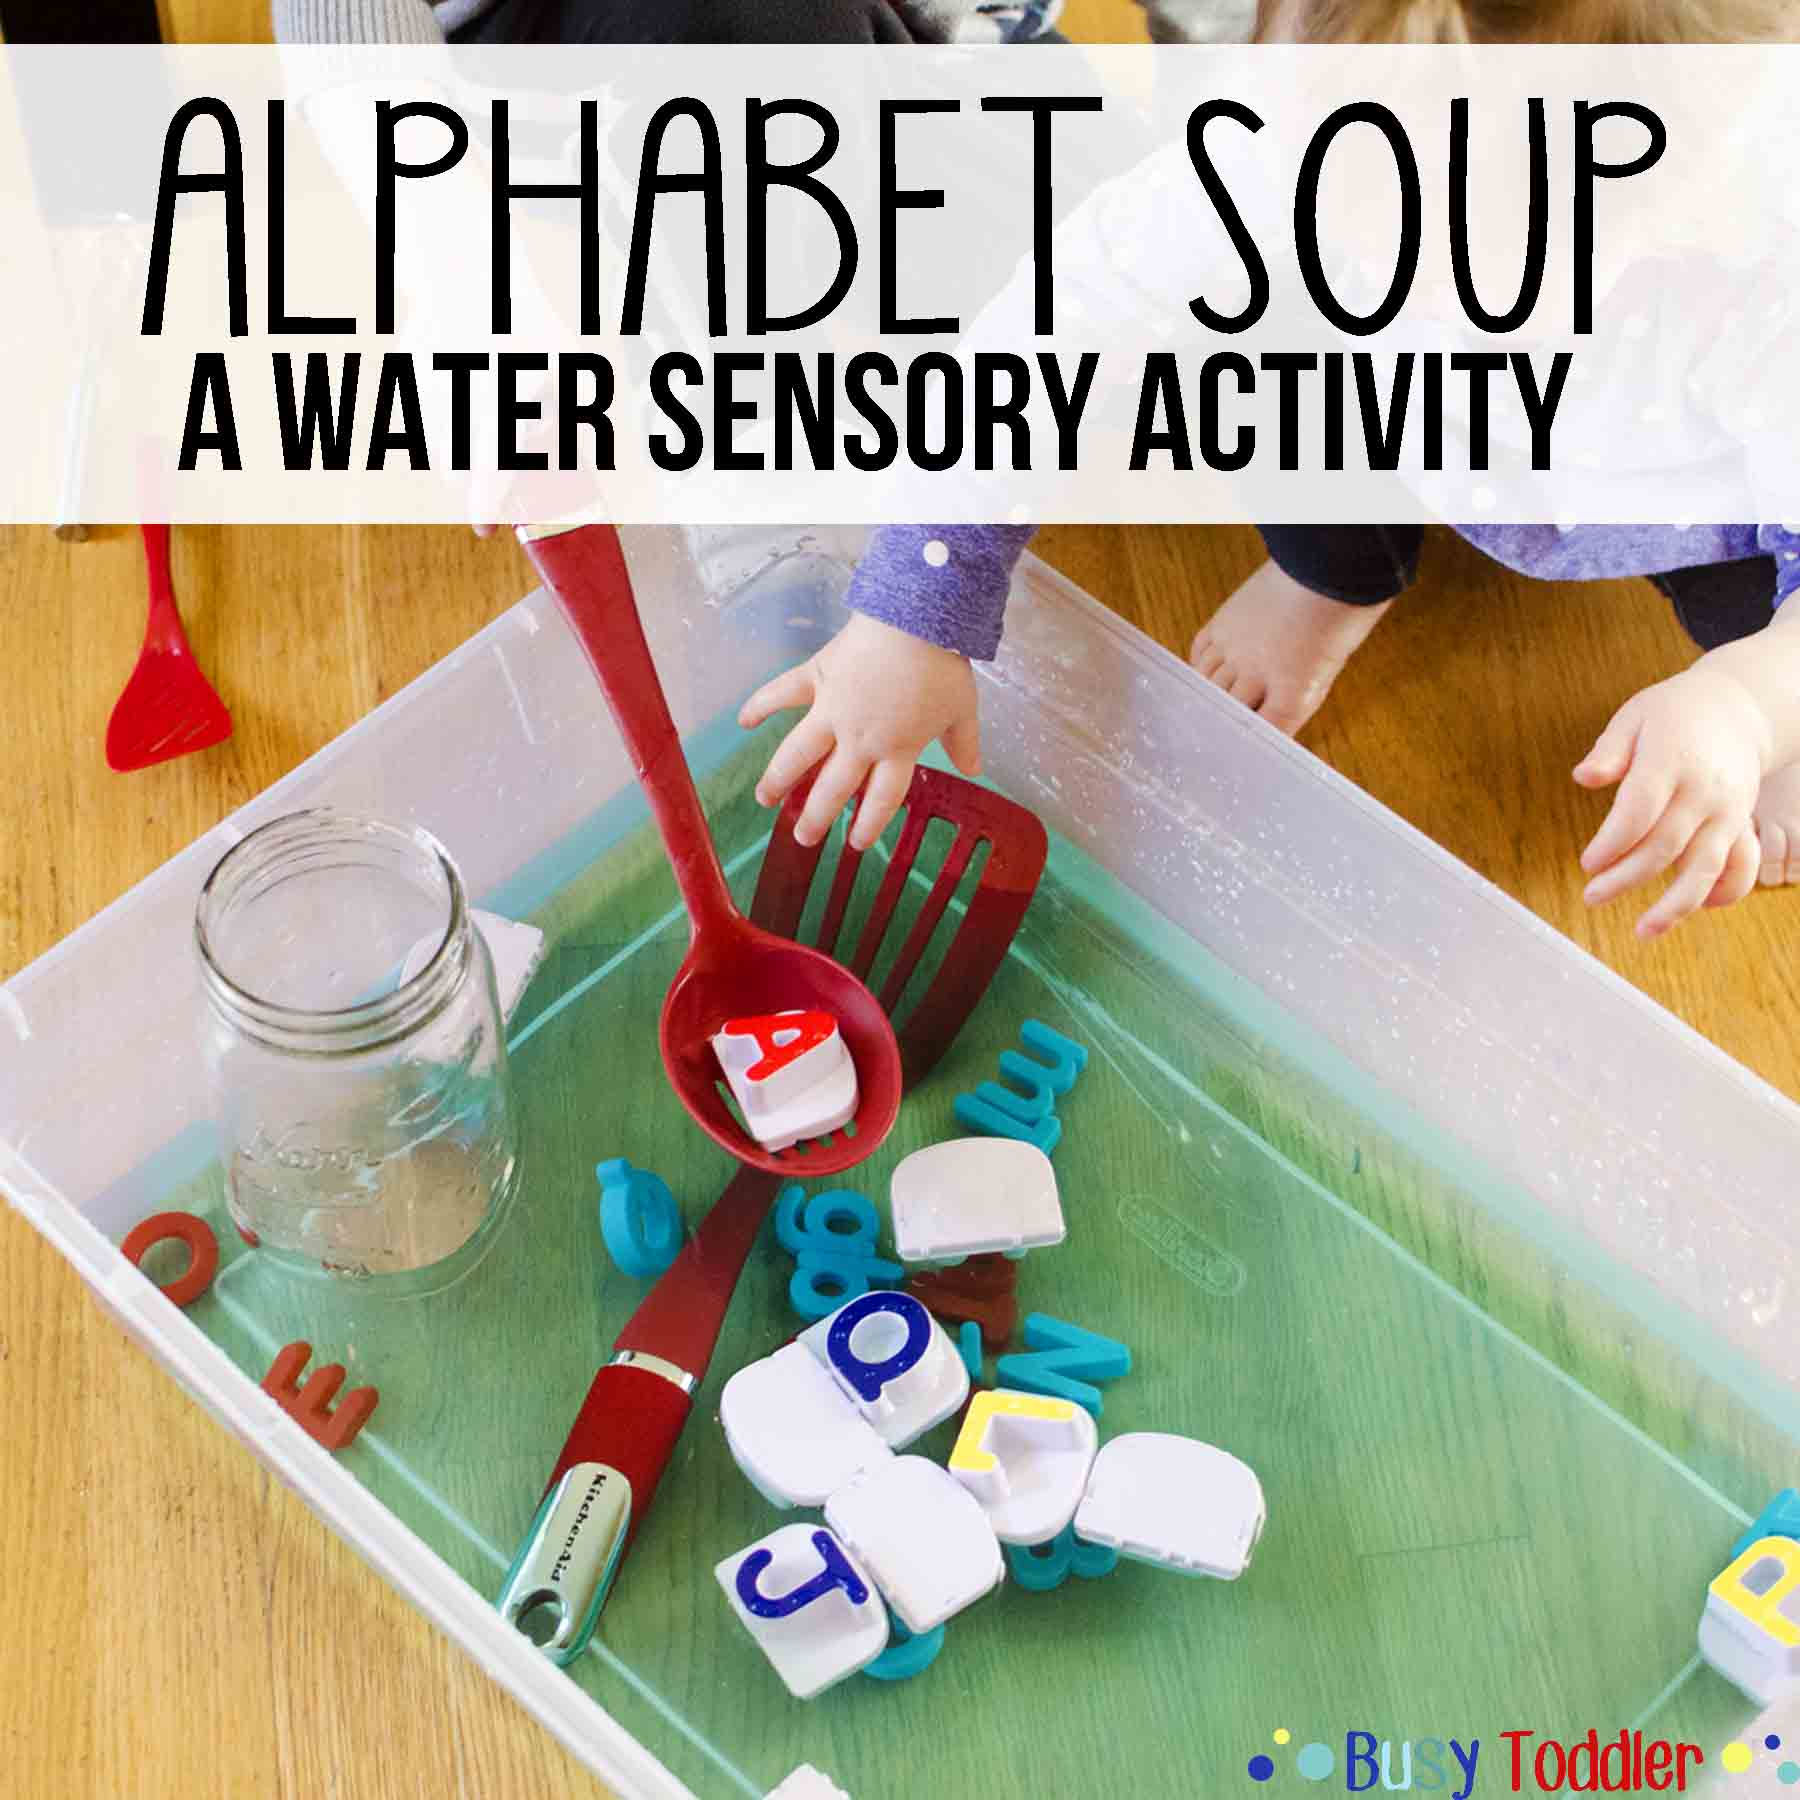 Alphabet Soup Sensory Water Activity